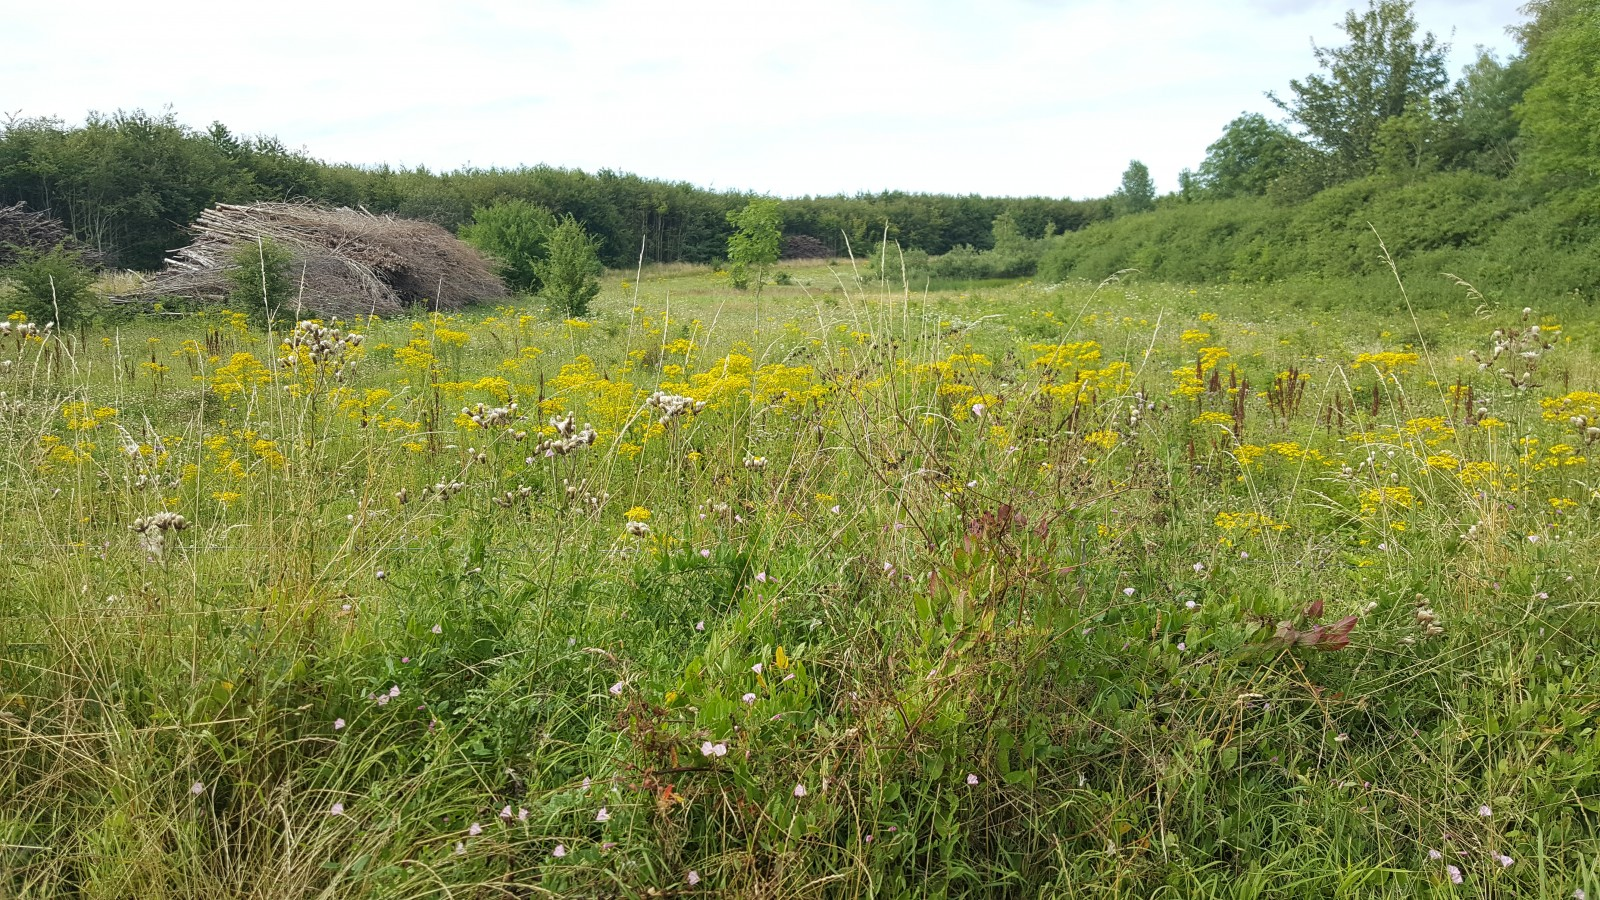 A fallow field full of beautiful wildflowers - or weeds, if you prefer!